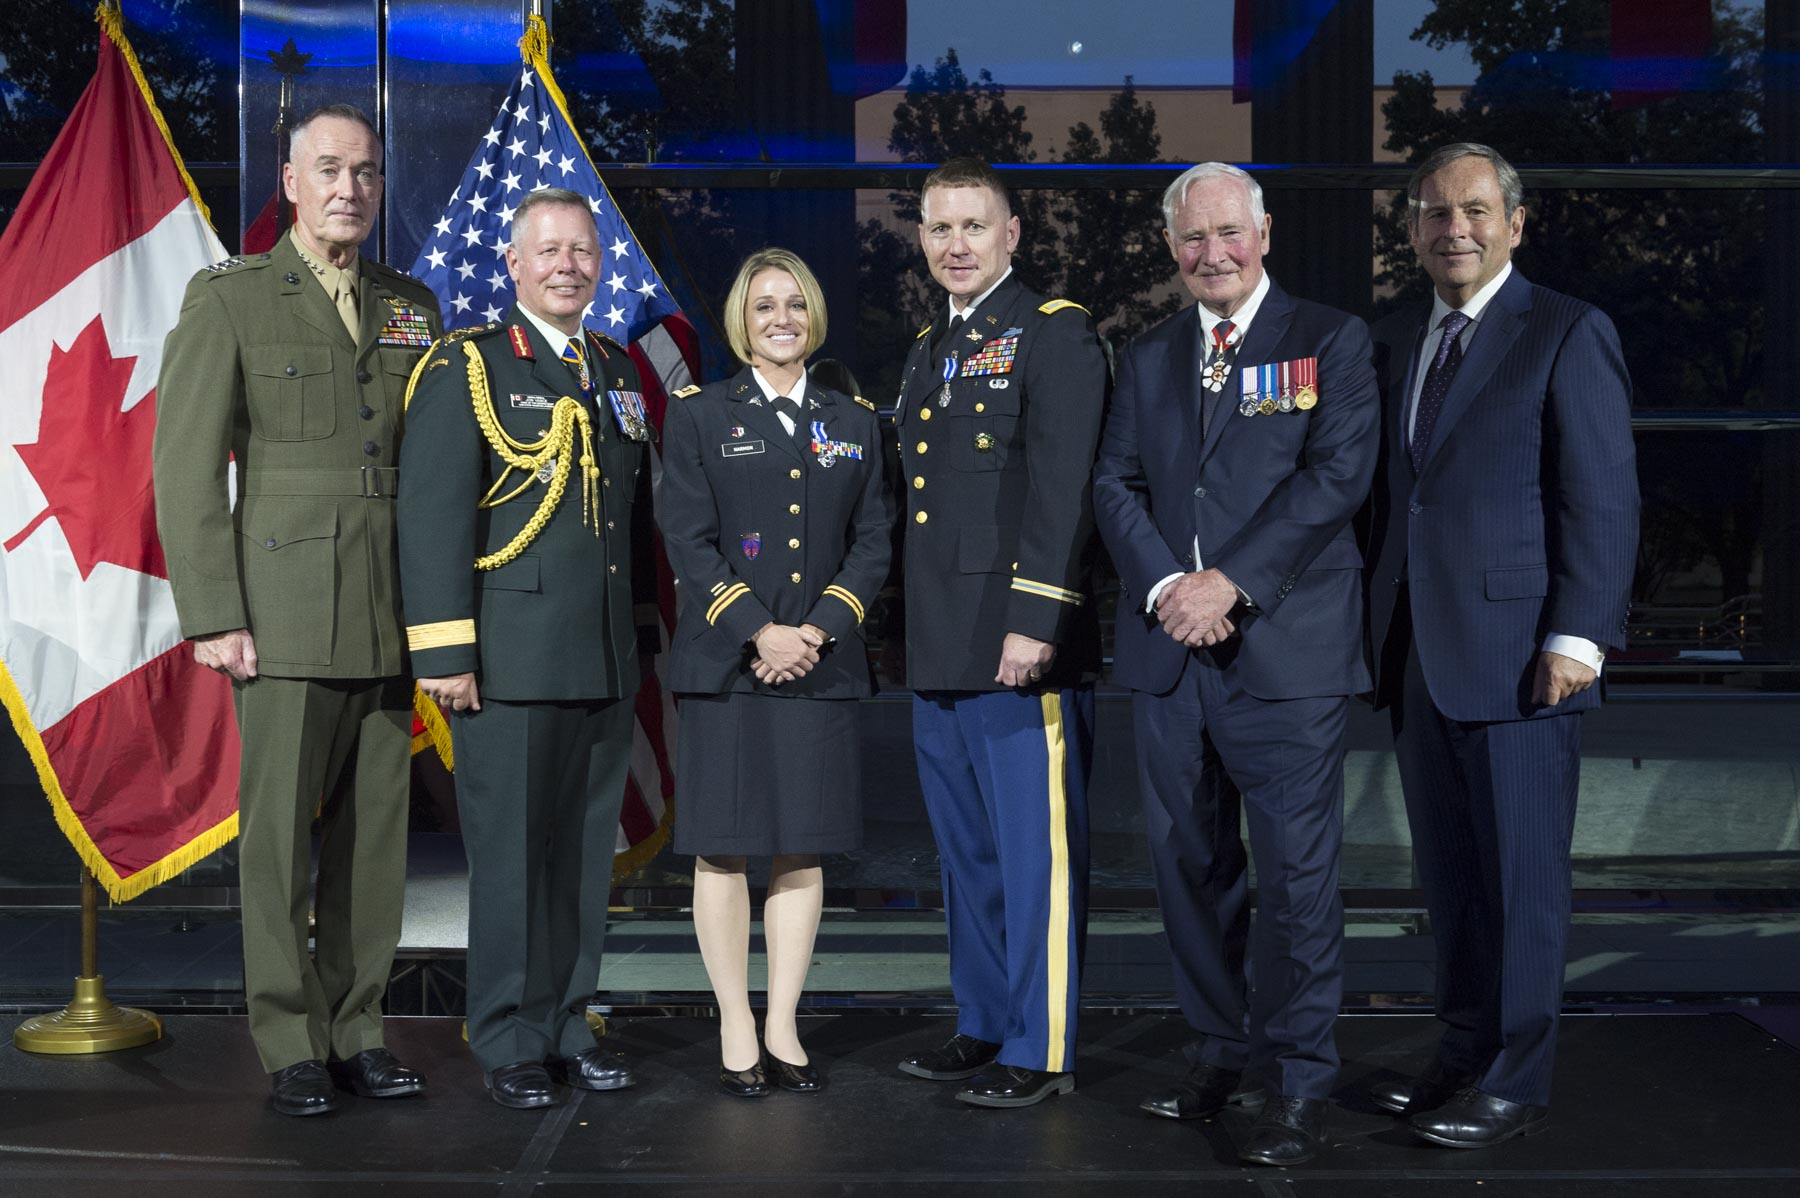 During this reception, His Excellency presented the Meritorious Service Medal (Military Division) to Major Jessica Harmon and Colonel Jeffery Stewart, members of the United States Army. 